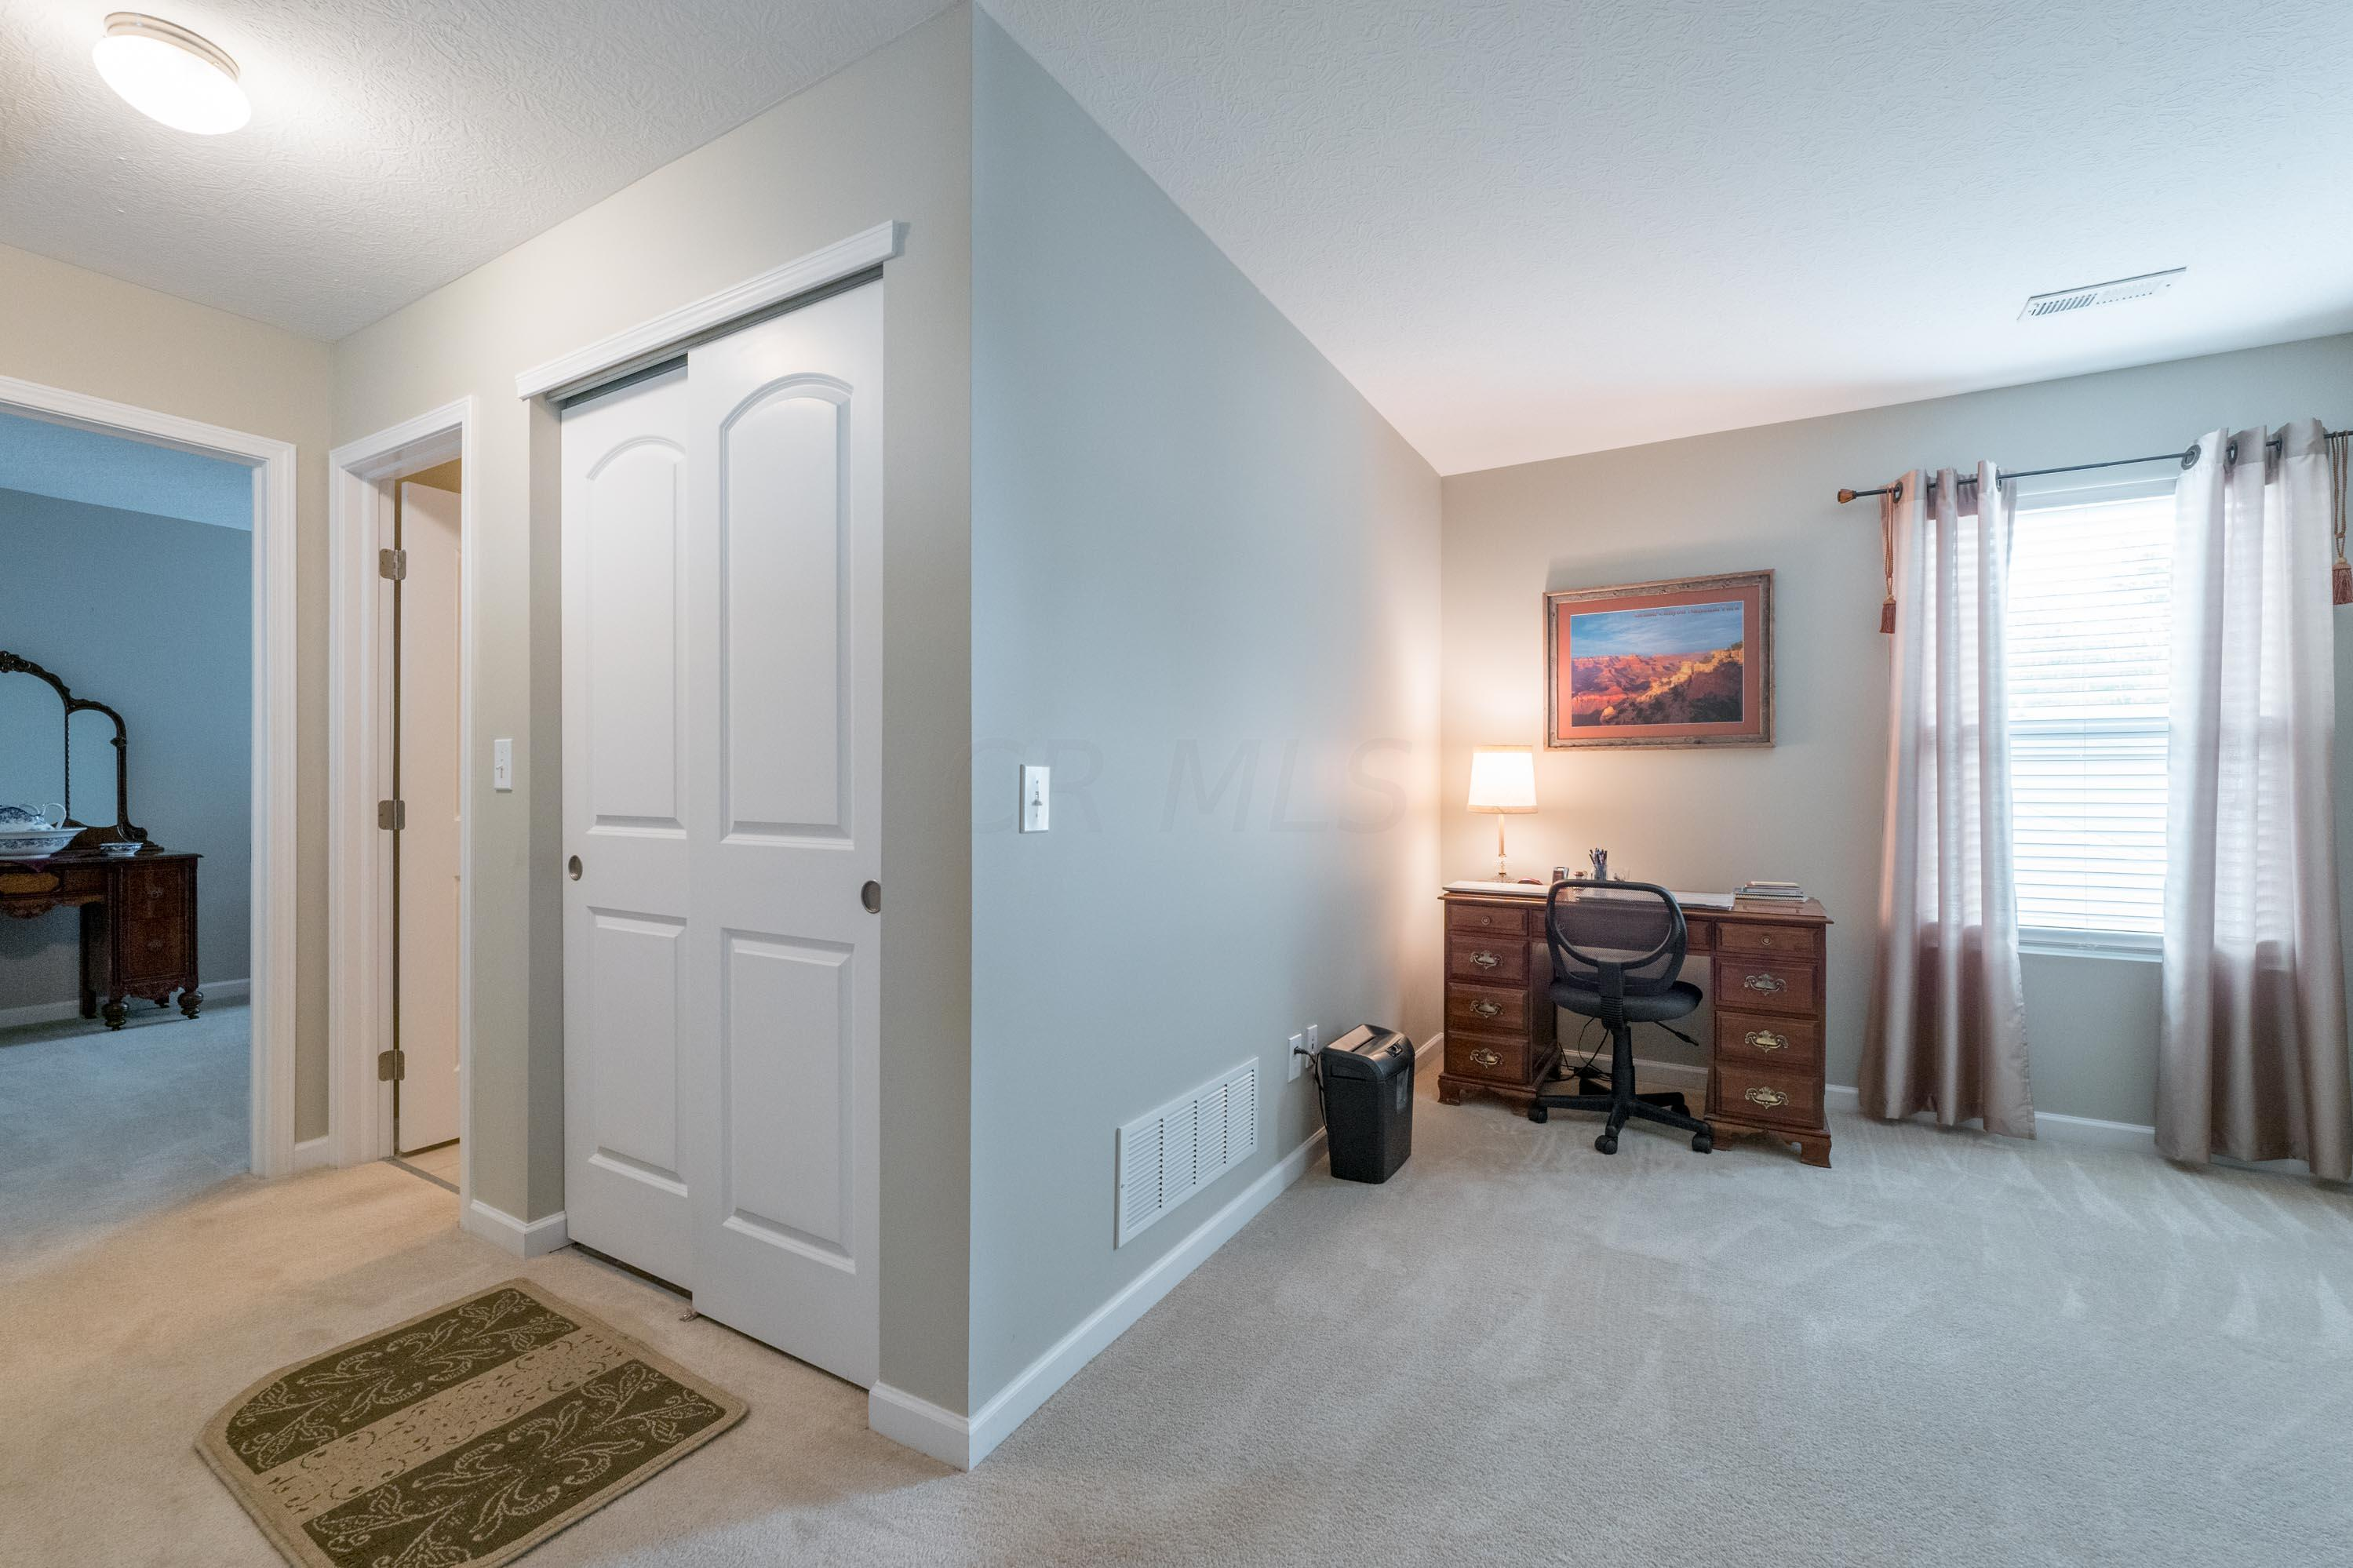 Easily converted to 3rd bedroom